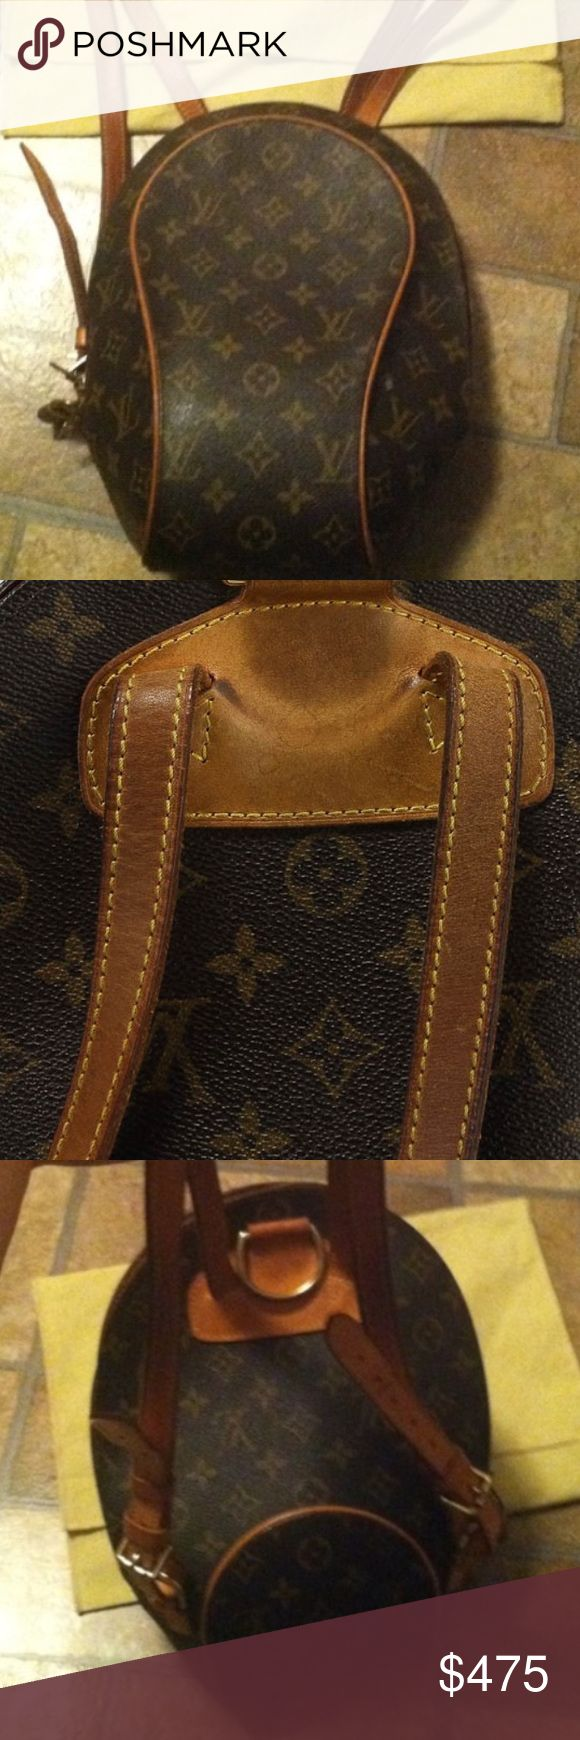 """Louis Vuitton Ellipse Backpack This is a  VINTAGE authentic LOUIS VUITTON Monogram Ellipse Backpack. The unique style of this backpack can create a chic contemporary style for everyday use. This is an excellent bag that is stylish and fabulously functional for all of your everyday essentials and luxury items.                                                    ***Wedding gift that was NEVER used  Box included. Length: 5"""", Height: 12"""", Depth: 4"""", Drop: 14"""" Item Location: New York, New York…"""